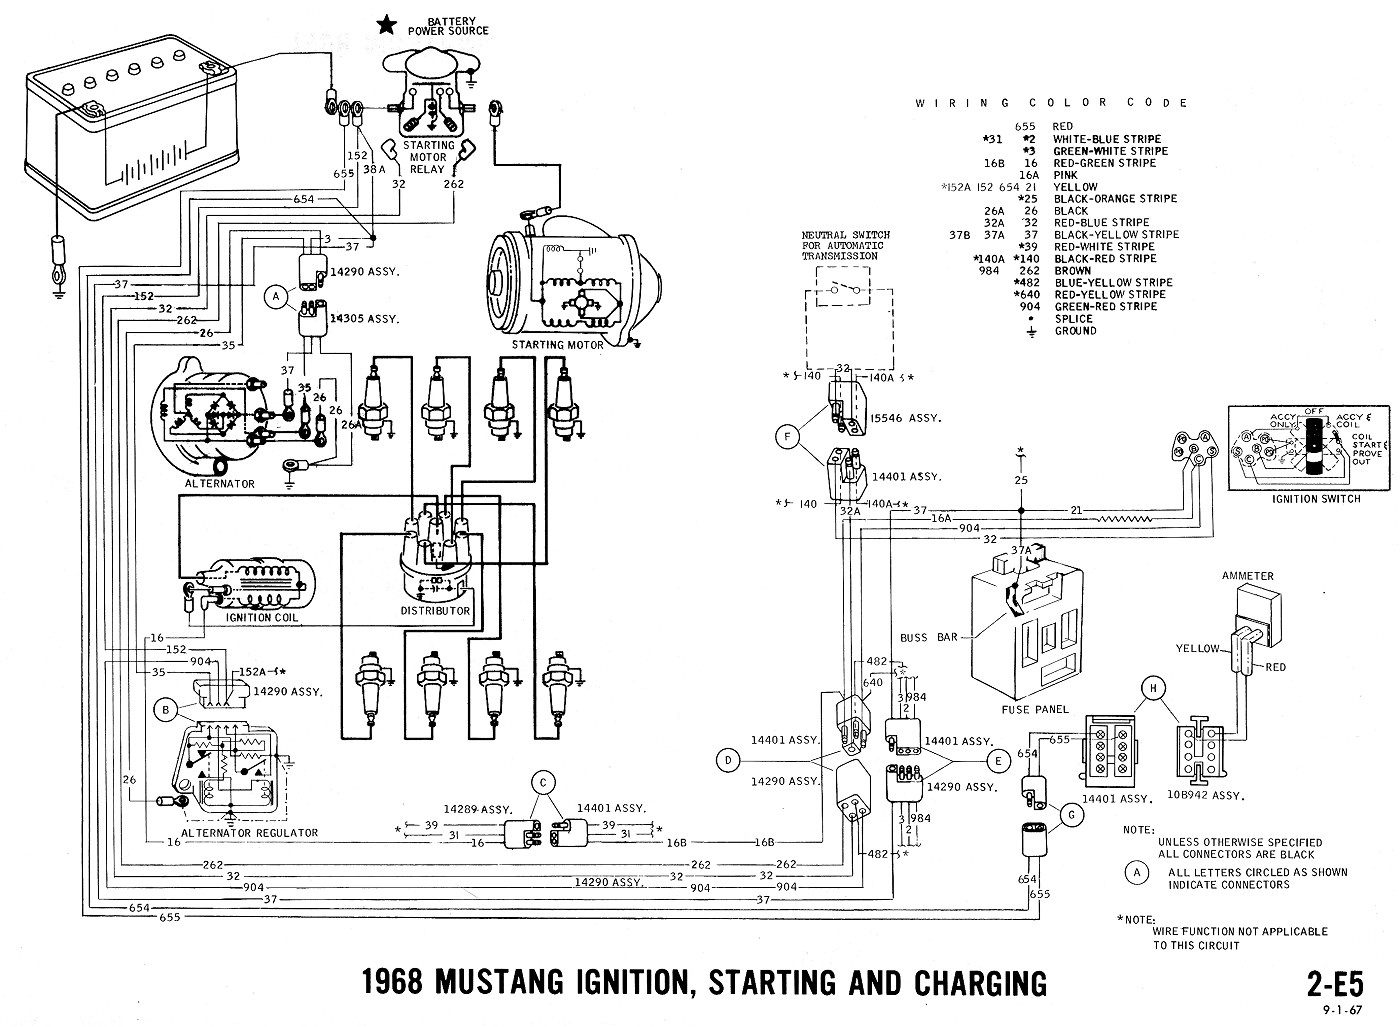 1980 F100 Wiring Diagram Diagrams 80 Ford Bronco 1982 Library Rh 63 Codingcommunity De 1975 Alternator